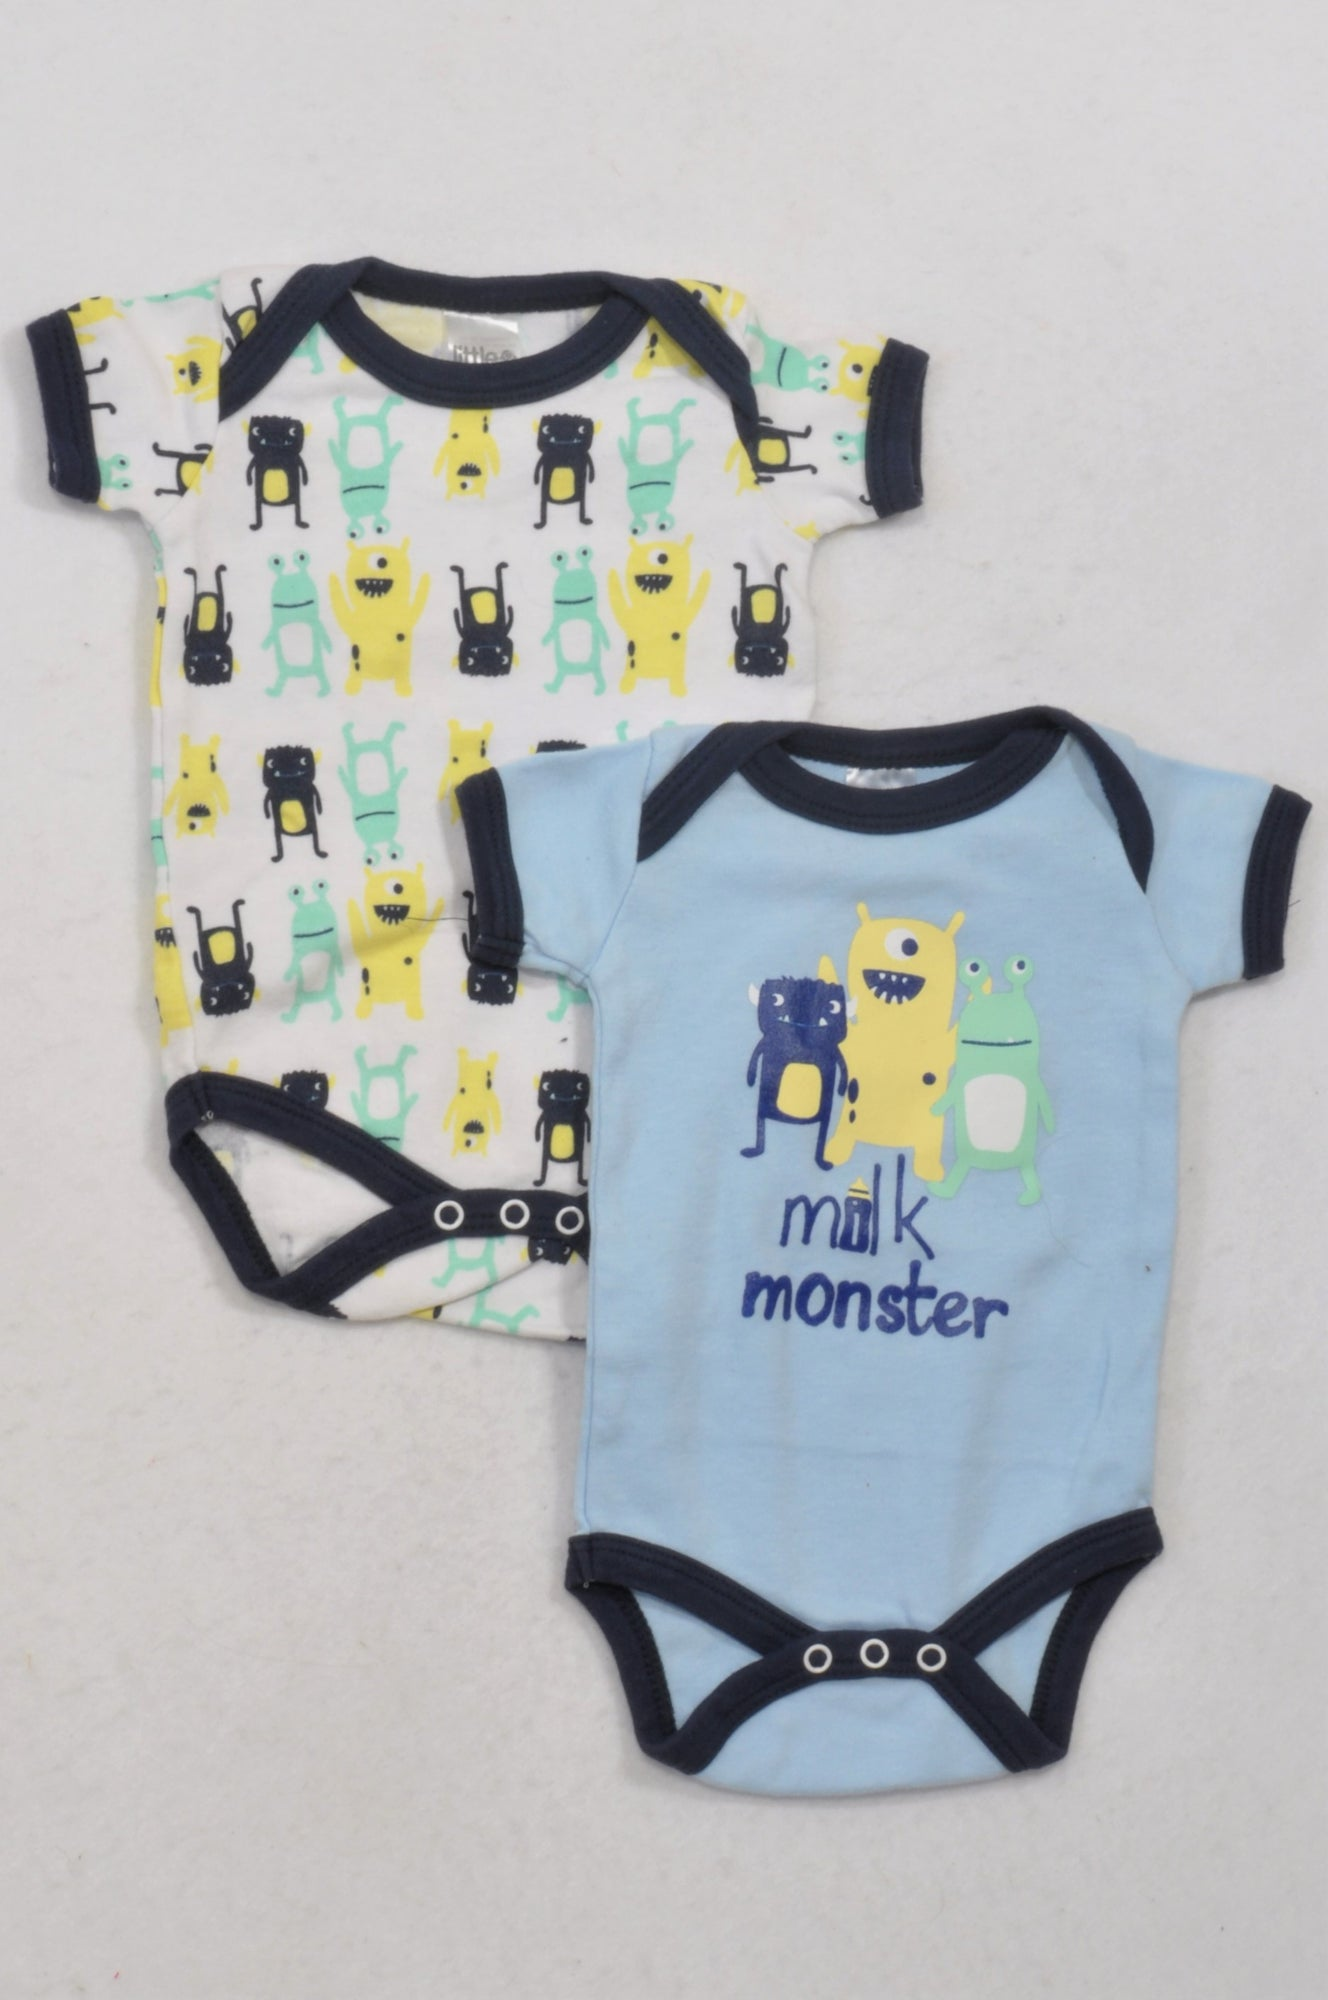 31dca48eb Little One 2 Pack Friendly Monster Baby Grows Girls 3-6 months ...